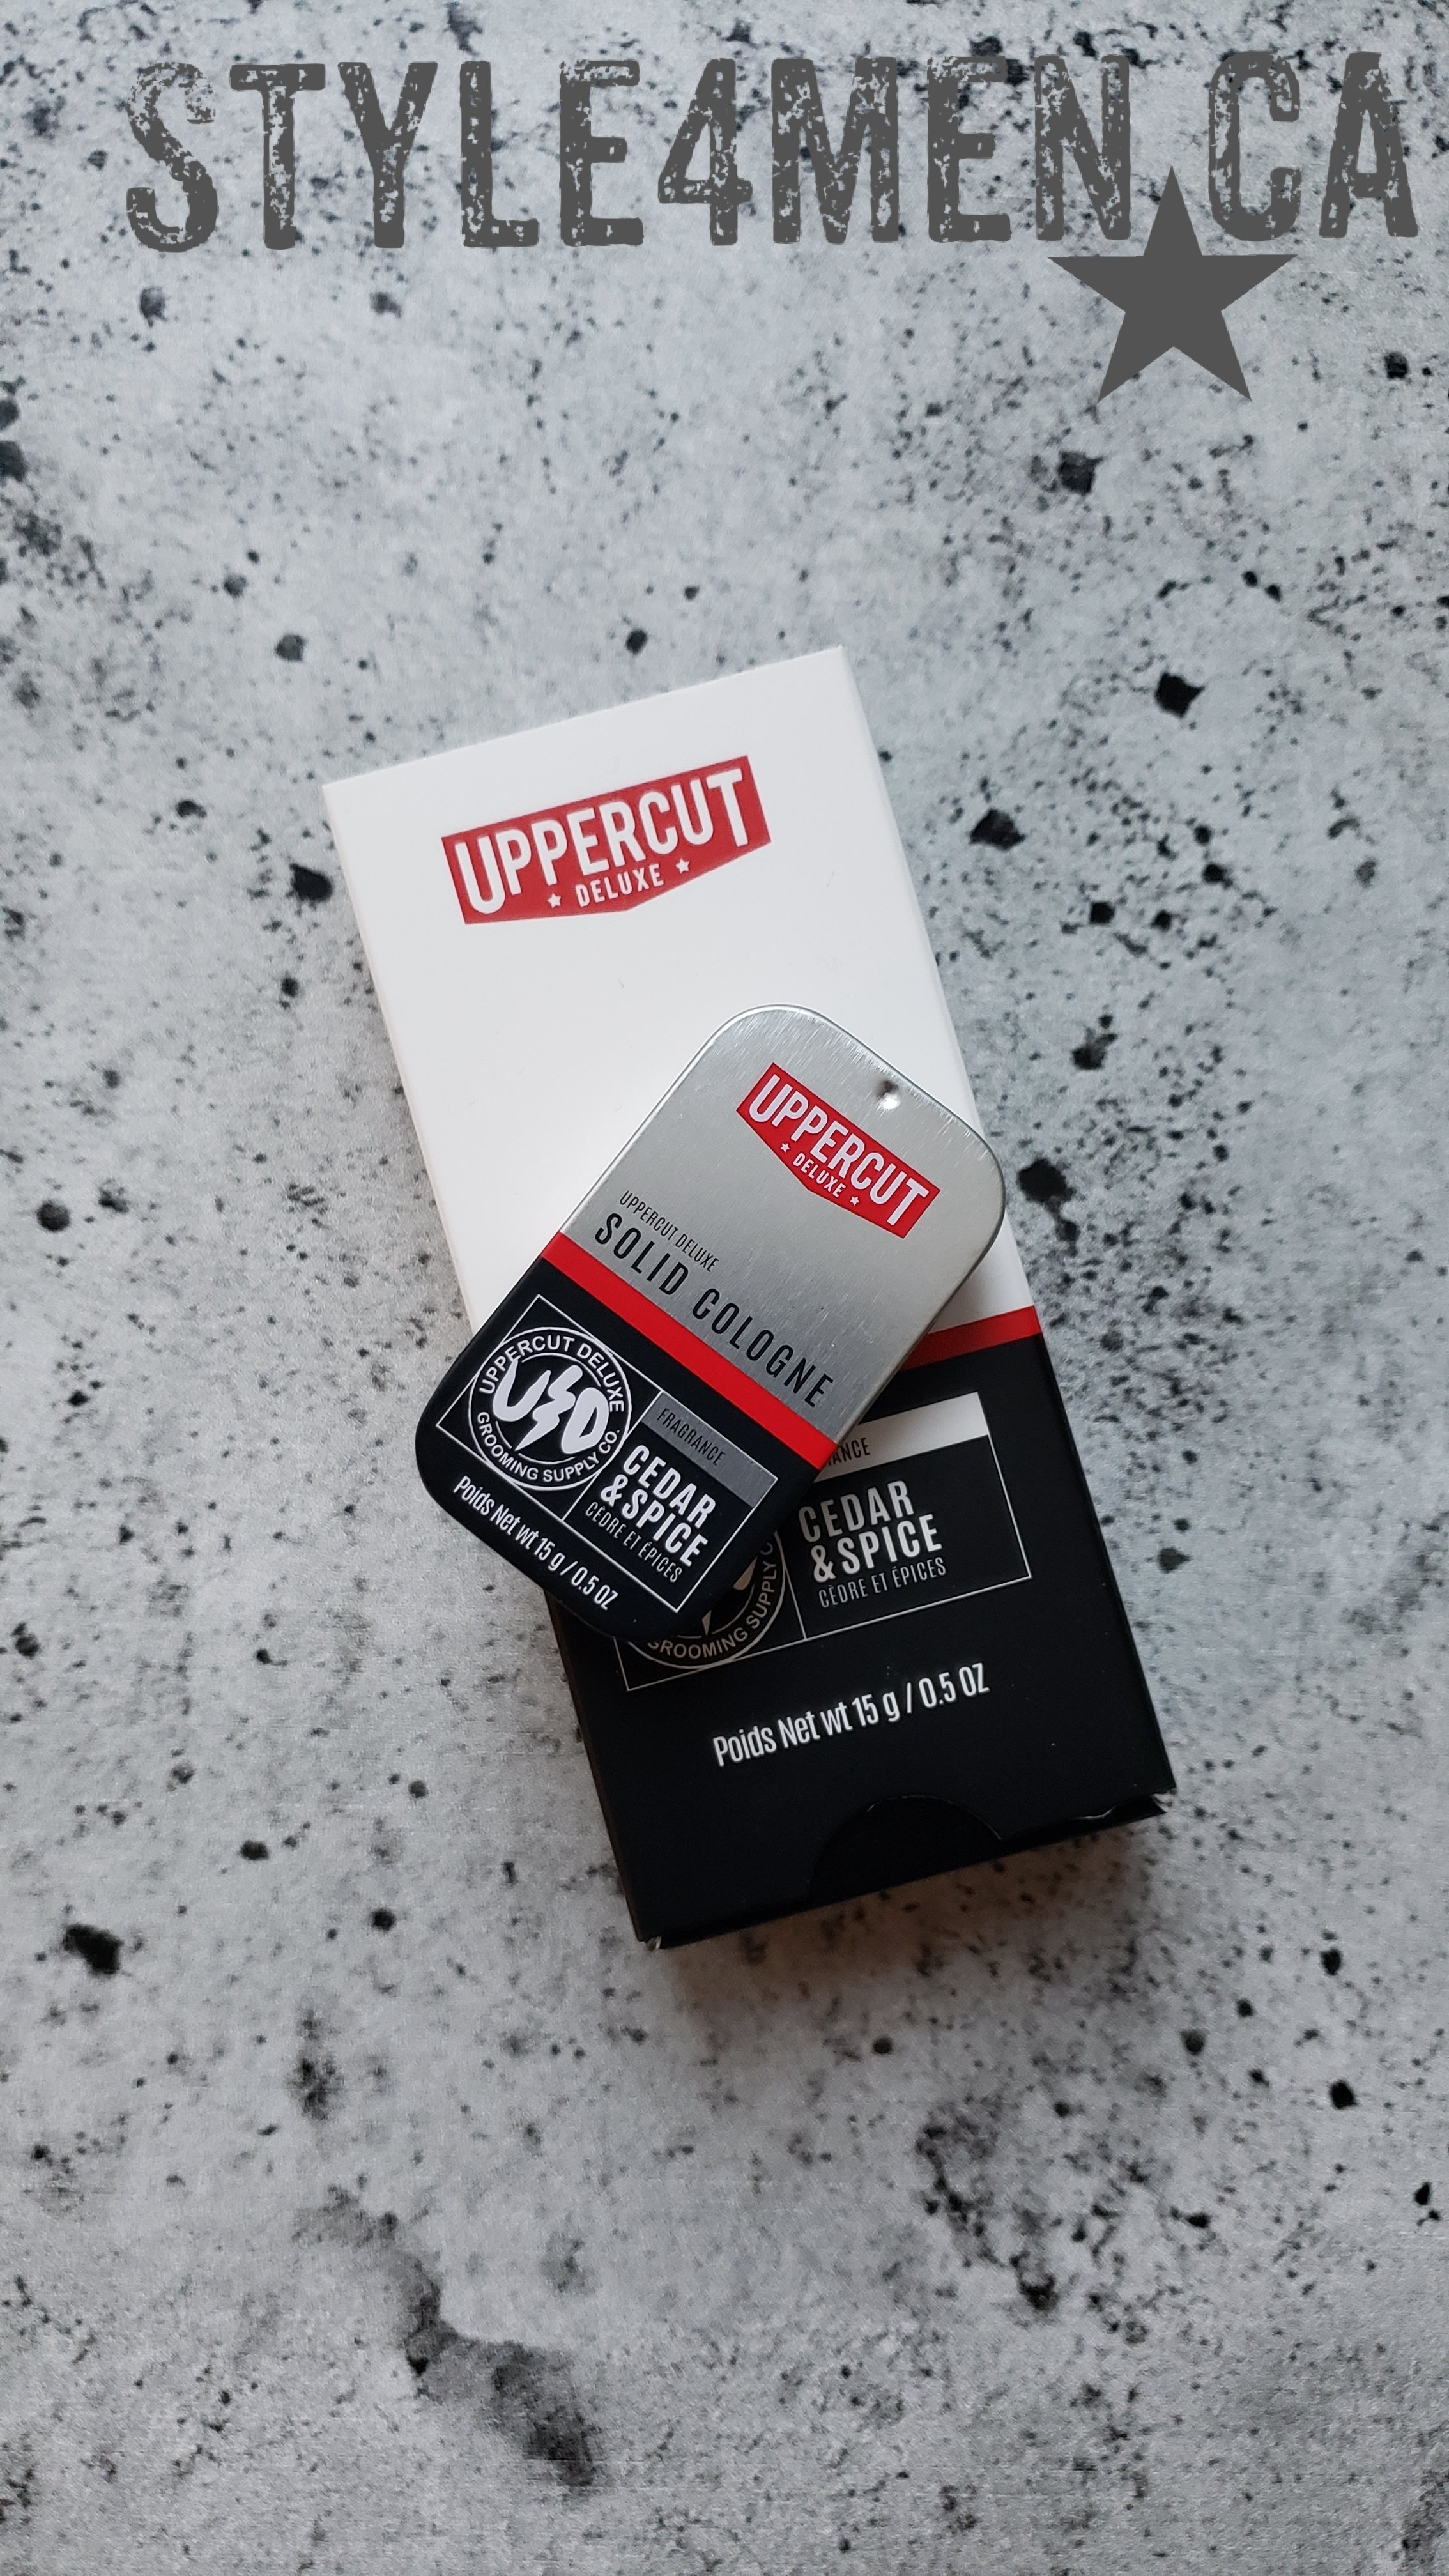 Uppercut Deluxe launches a solid cologne